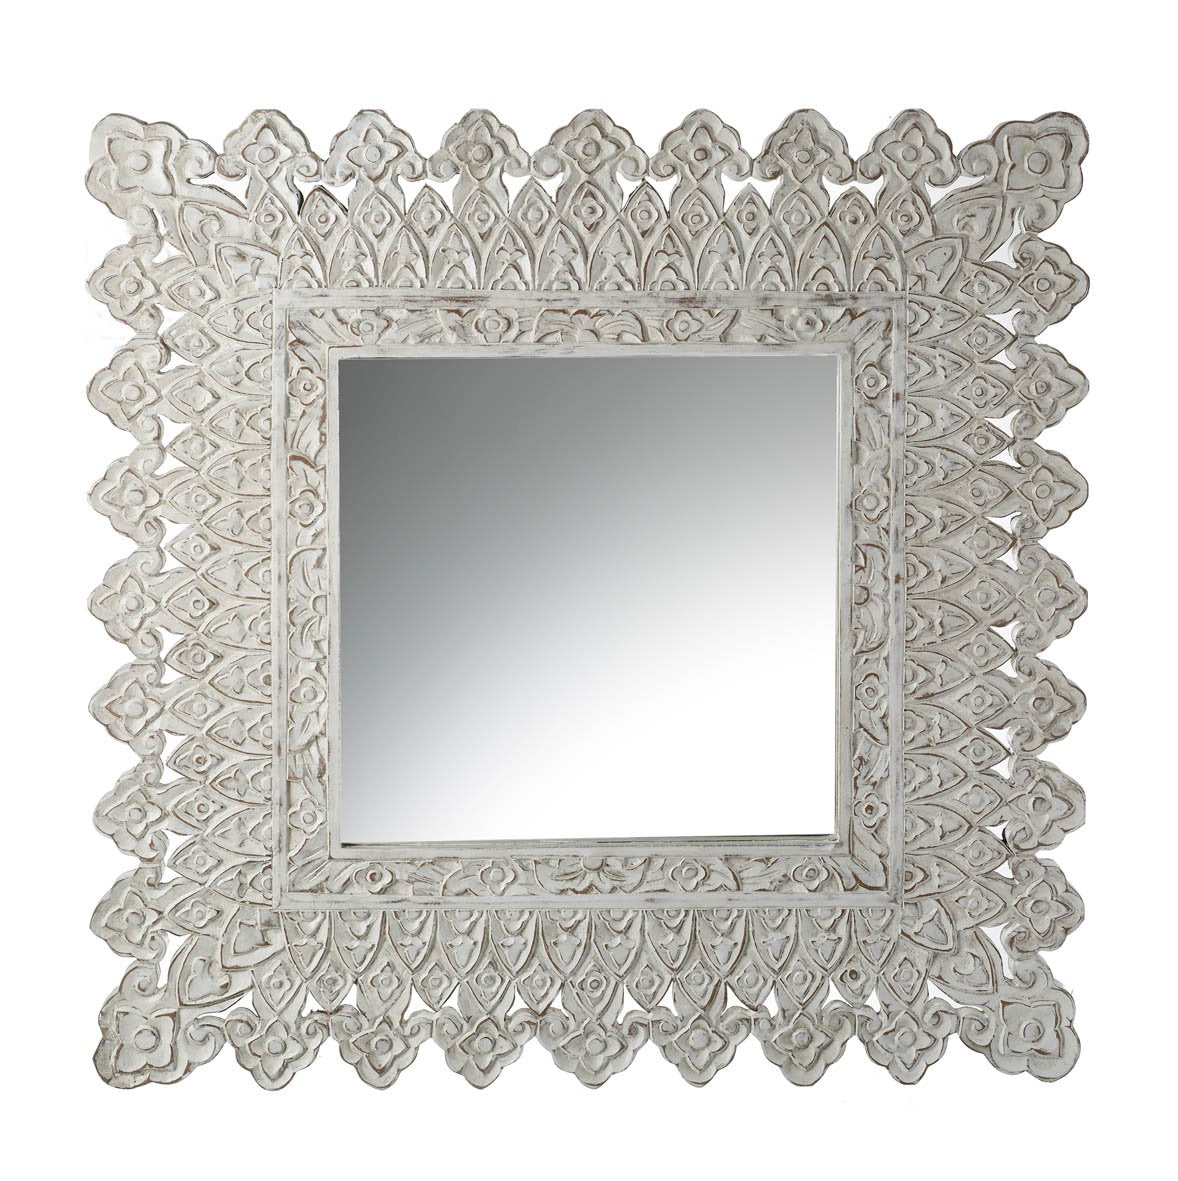 White carved edge mirror